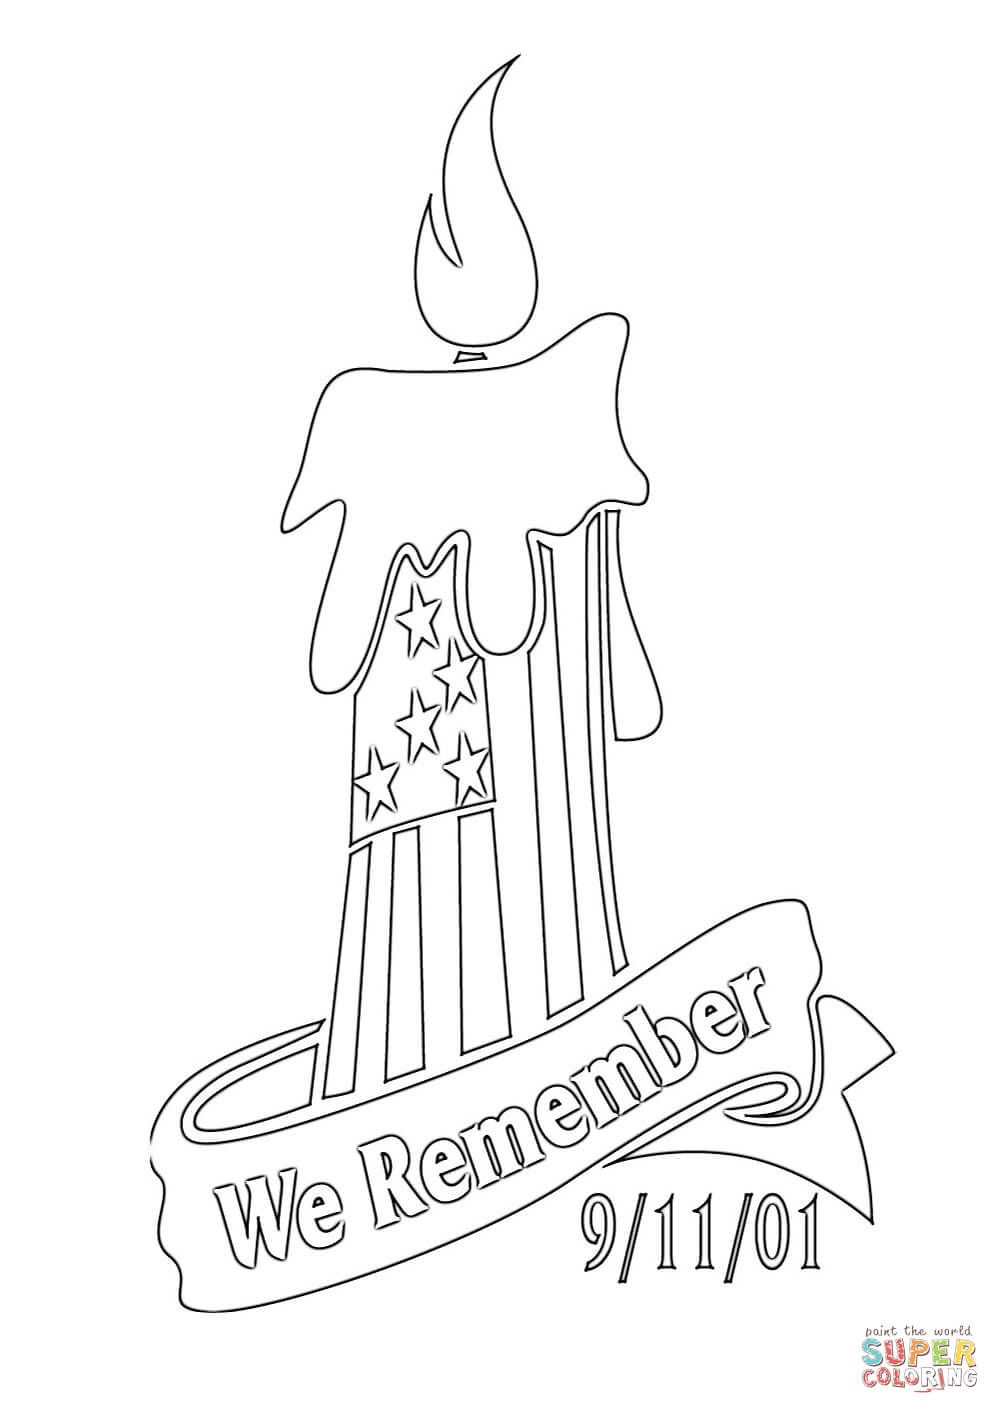 We Remember coloring page Free Printable Coloring Pages